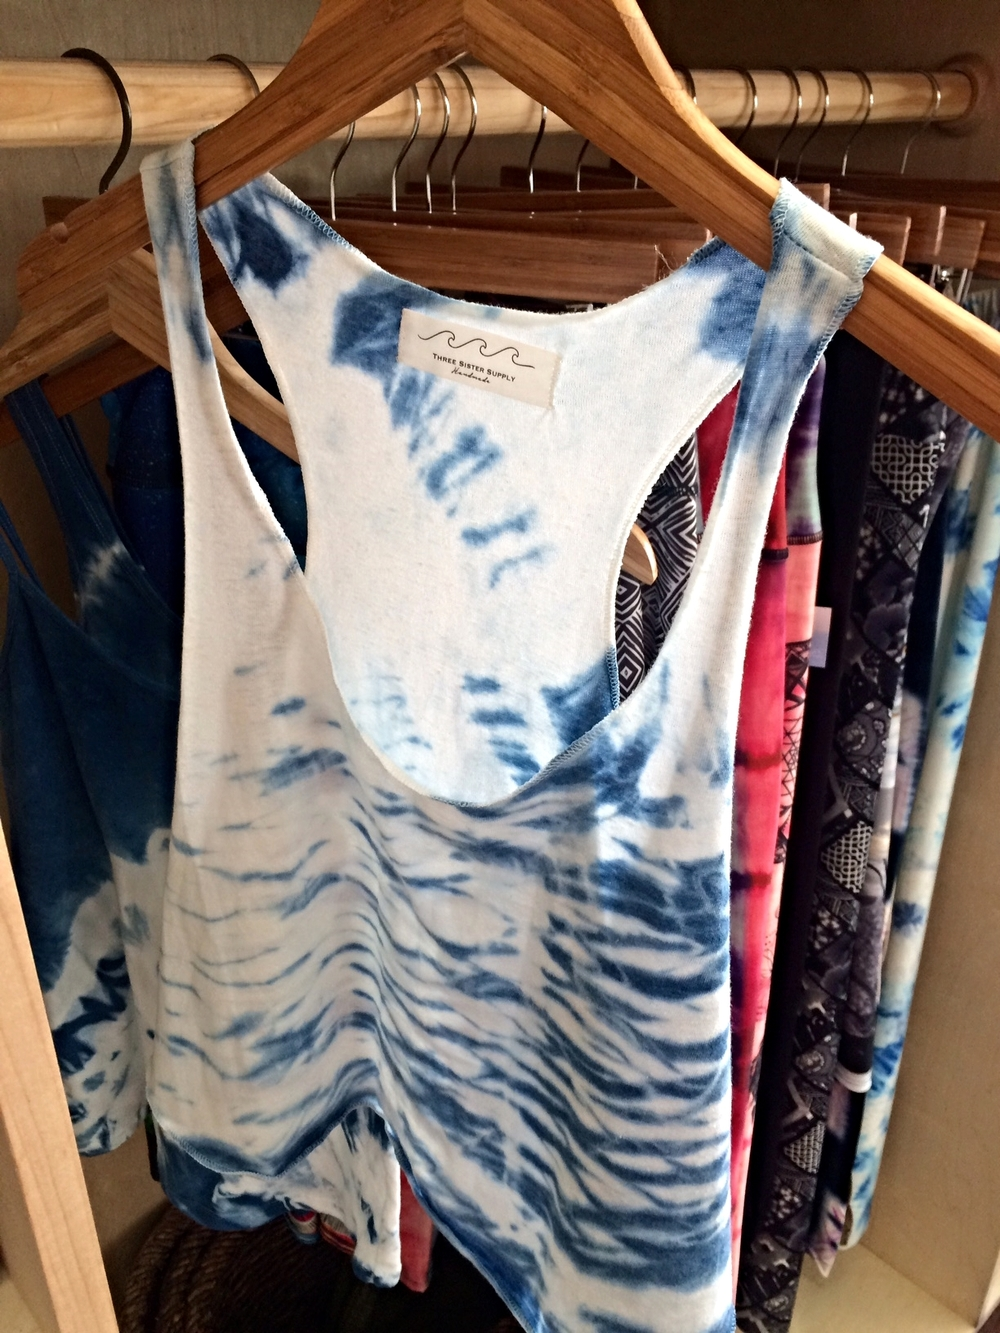 Our Shibori tanks are paired with fun yoga pants at Shatki Yoga Key West.